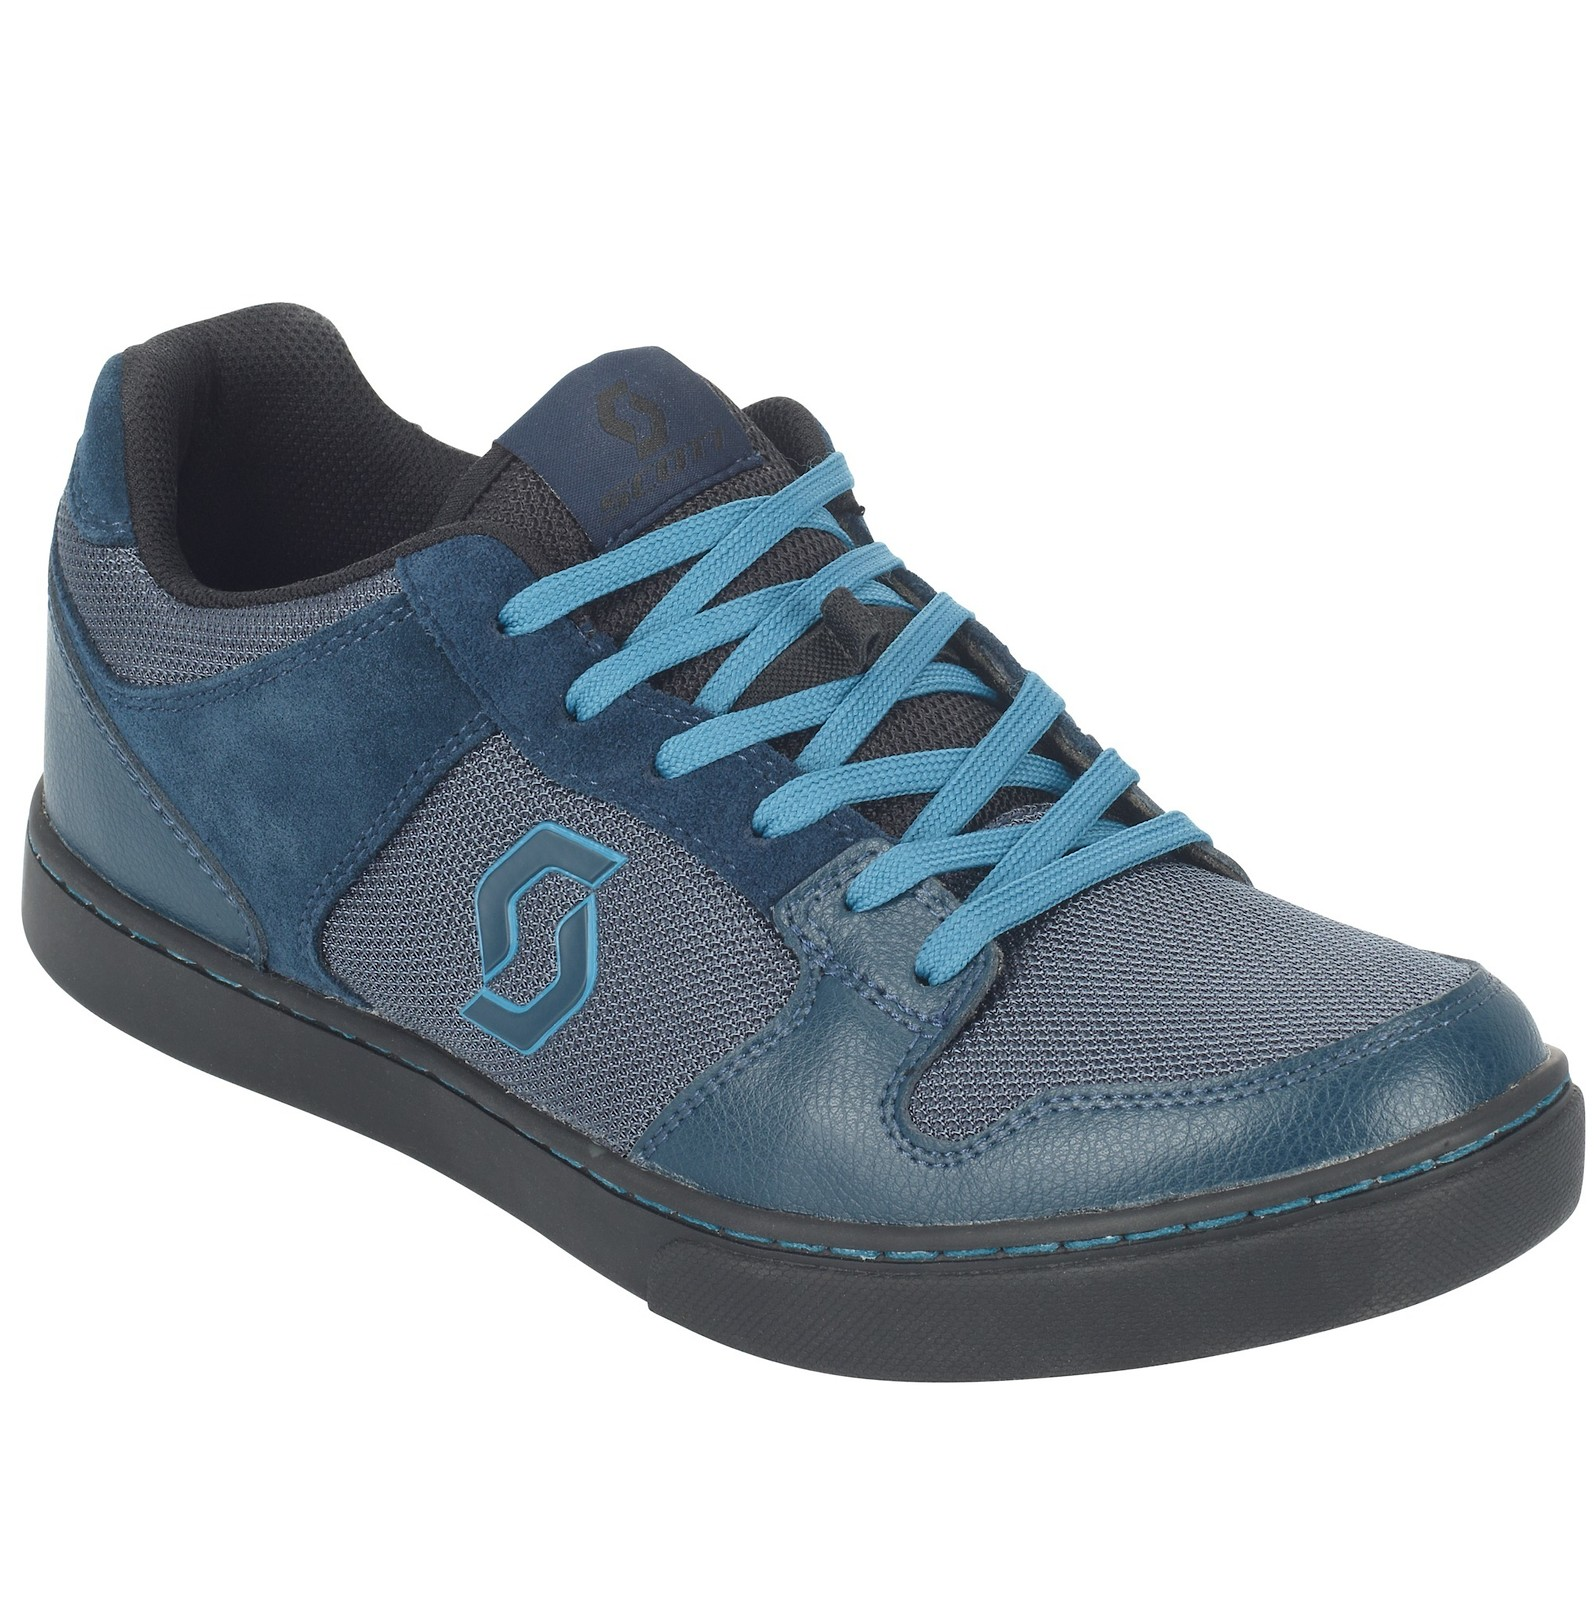 Scott FR10 shoe in blue/black